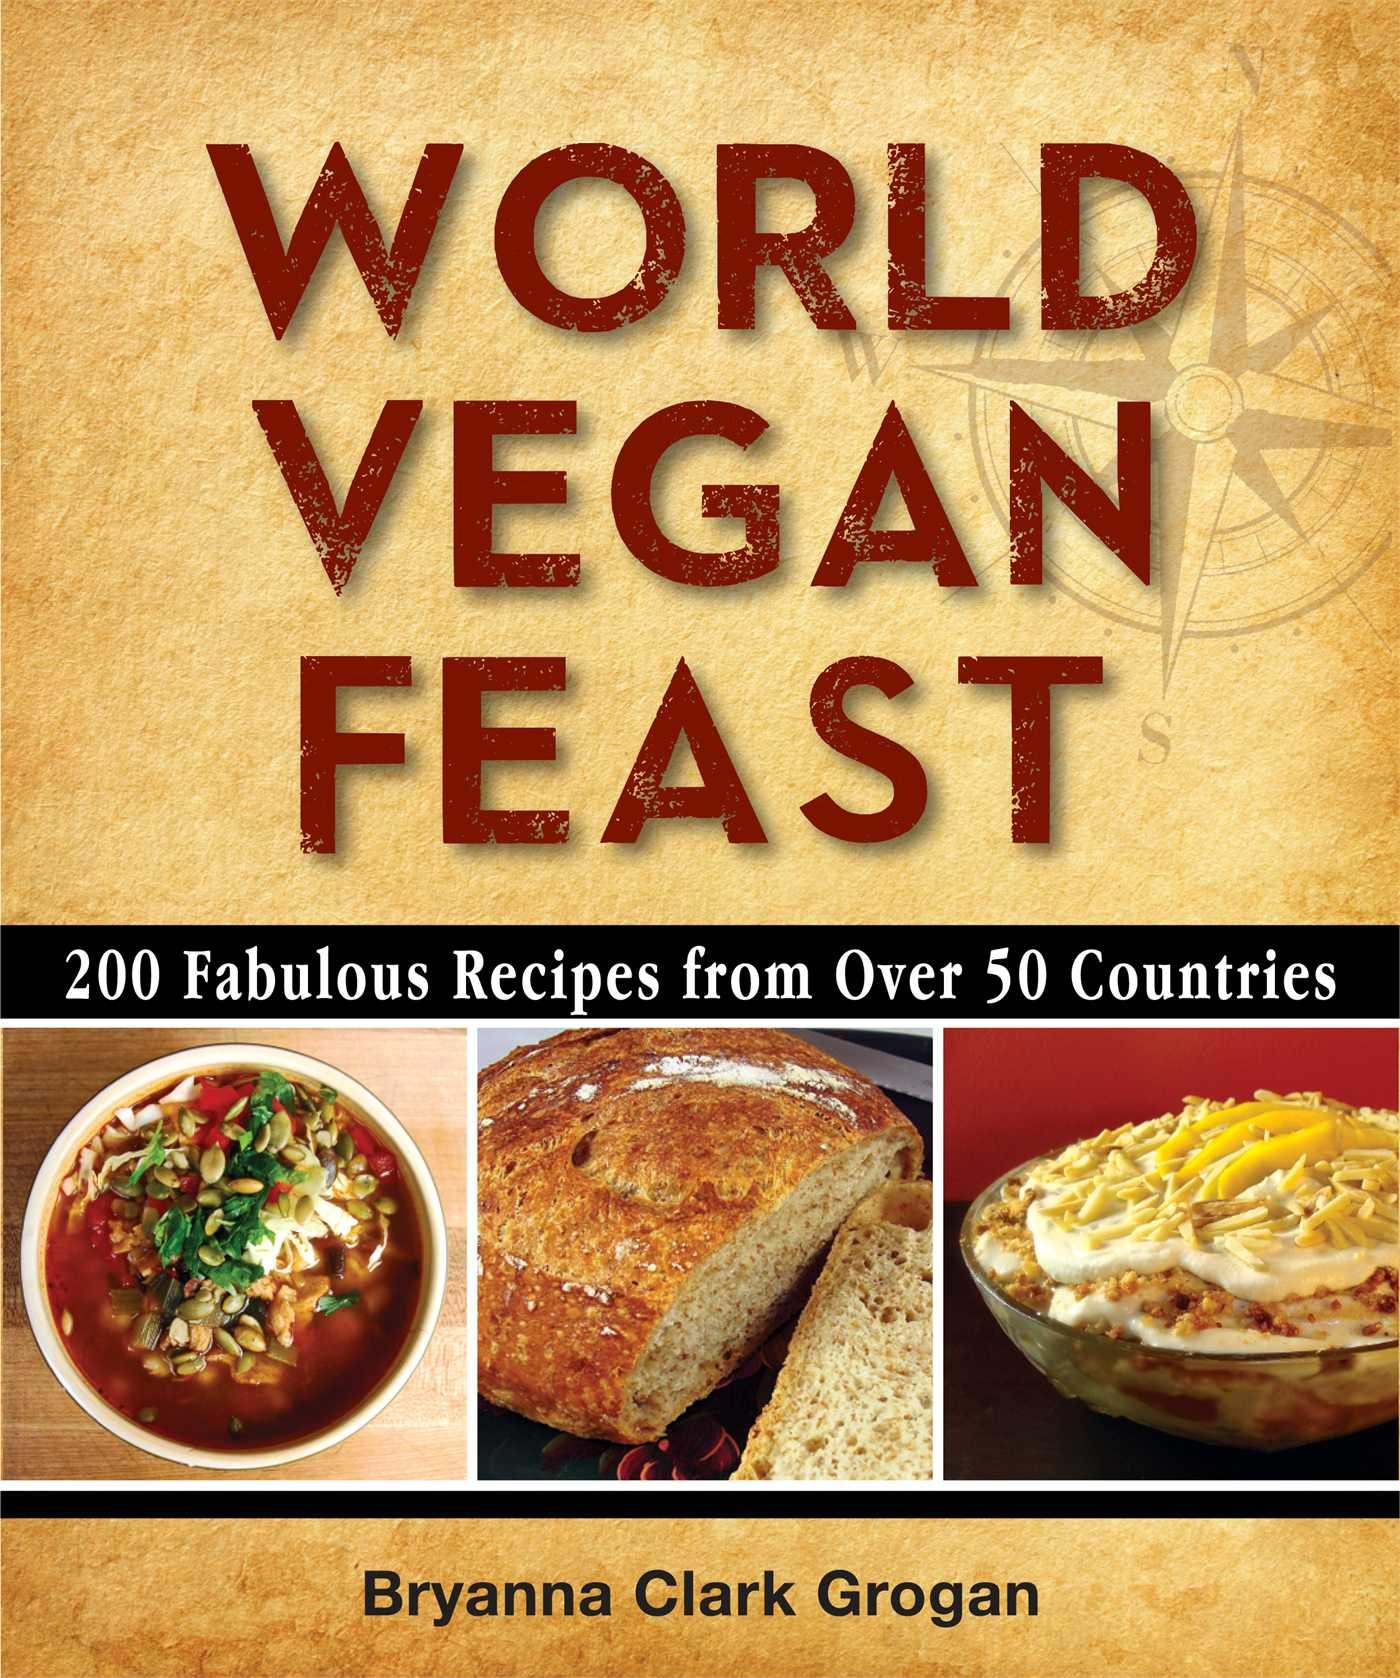 World Vegan Feast: 200 Fabulous Recipes From Over 50 Countries by Vegan Heritage Press, LLC